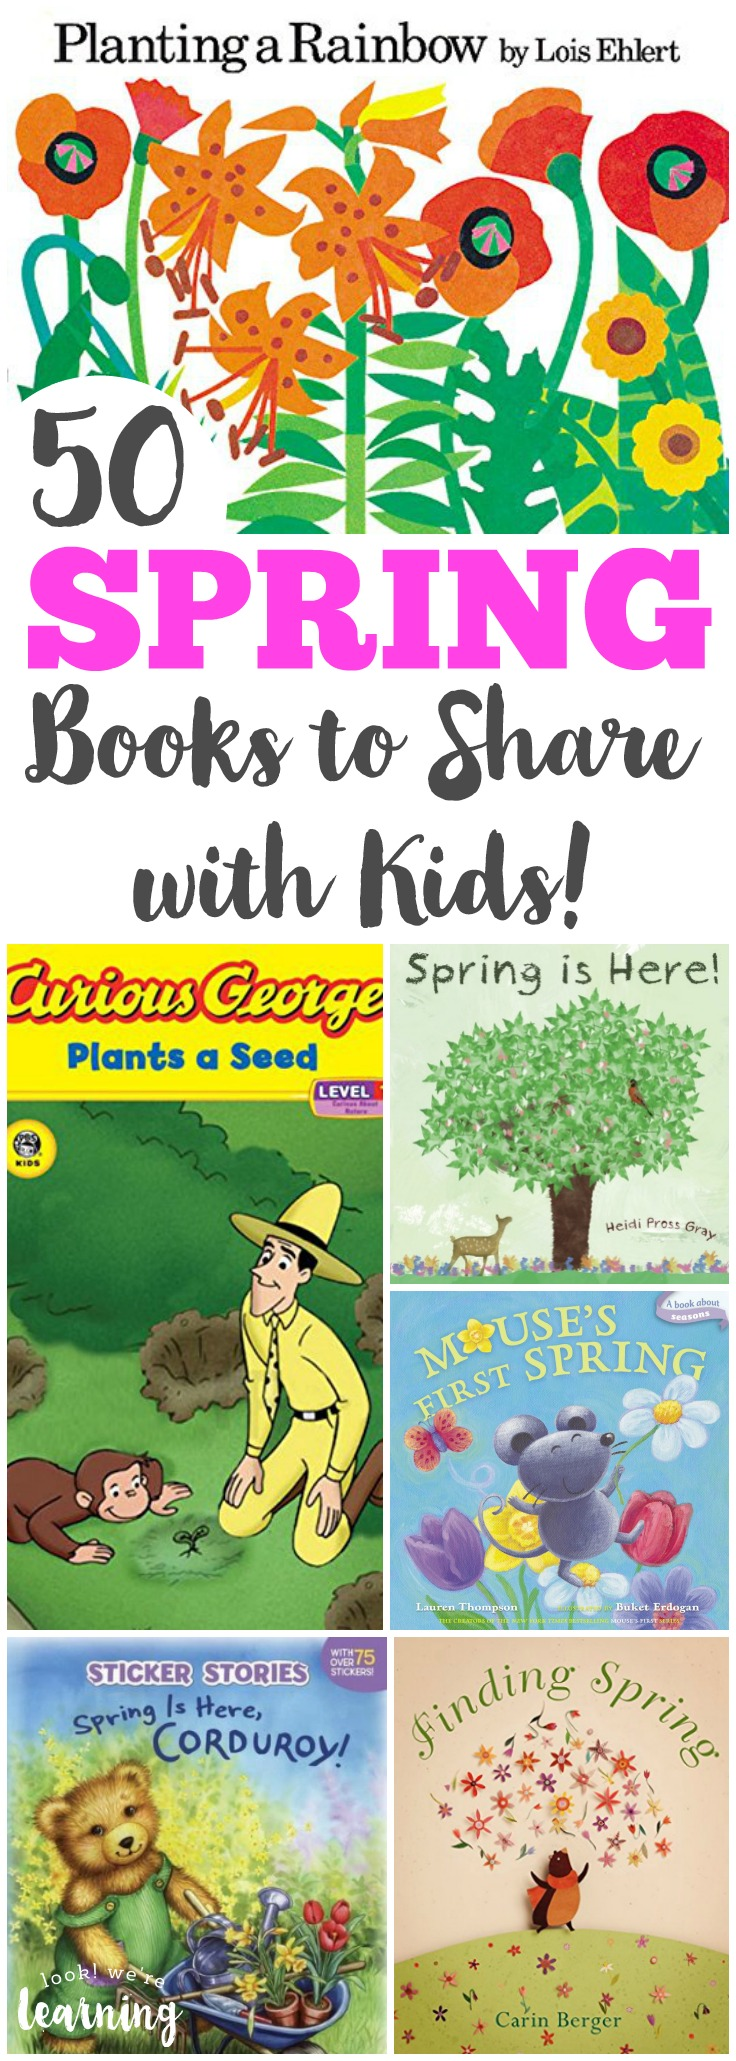 Spring is a wonderful time of year for sharing stories! Read some of these spring books for kids with your little ones!